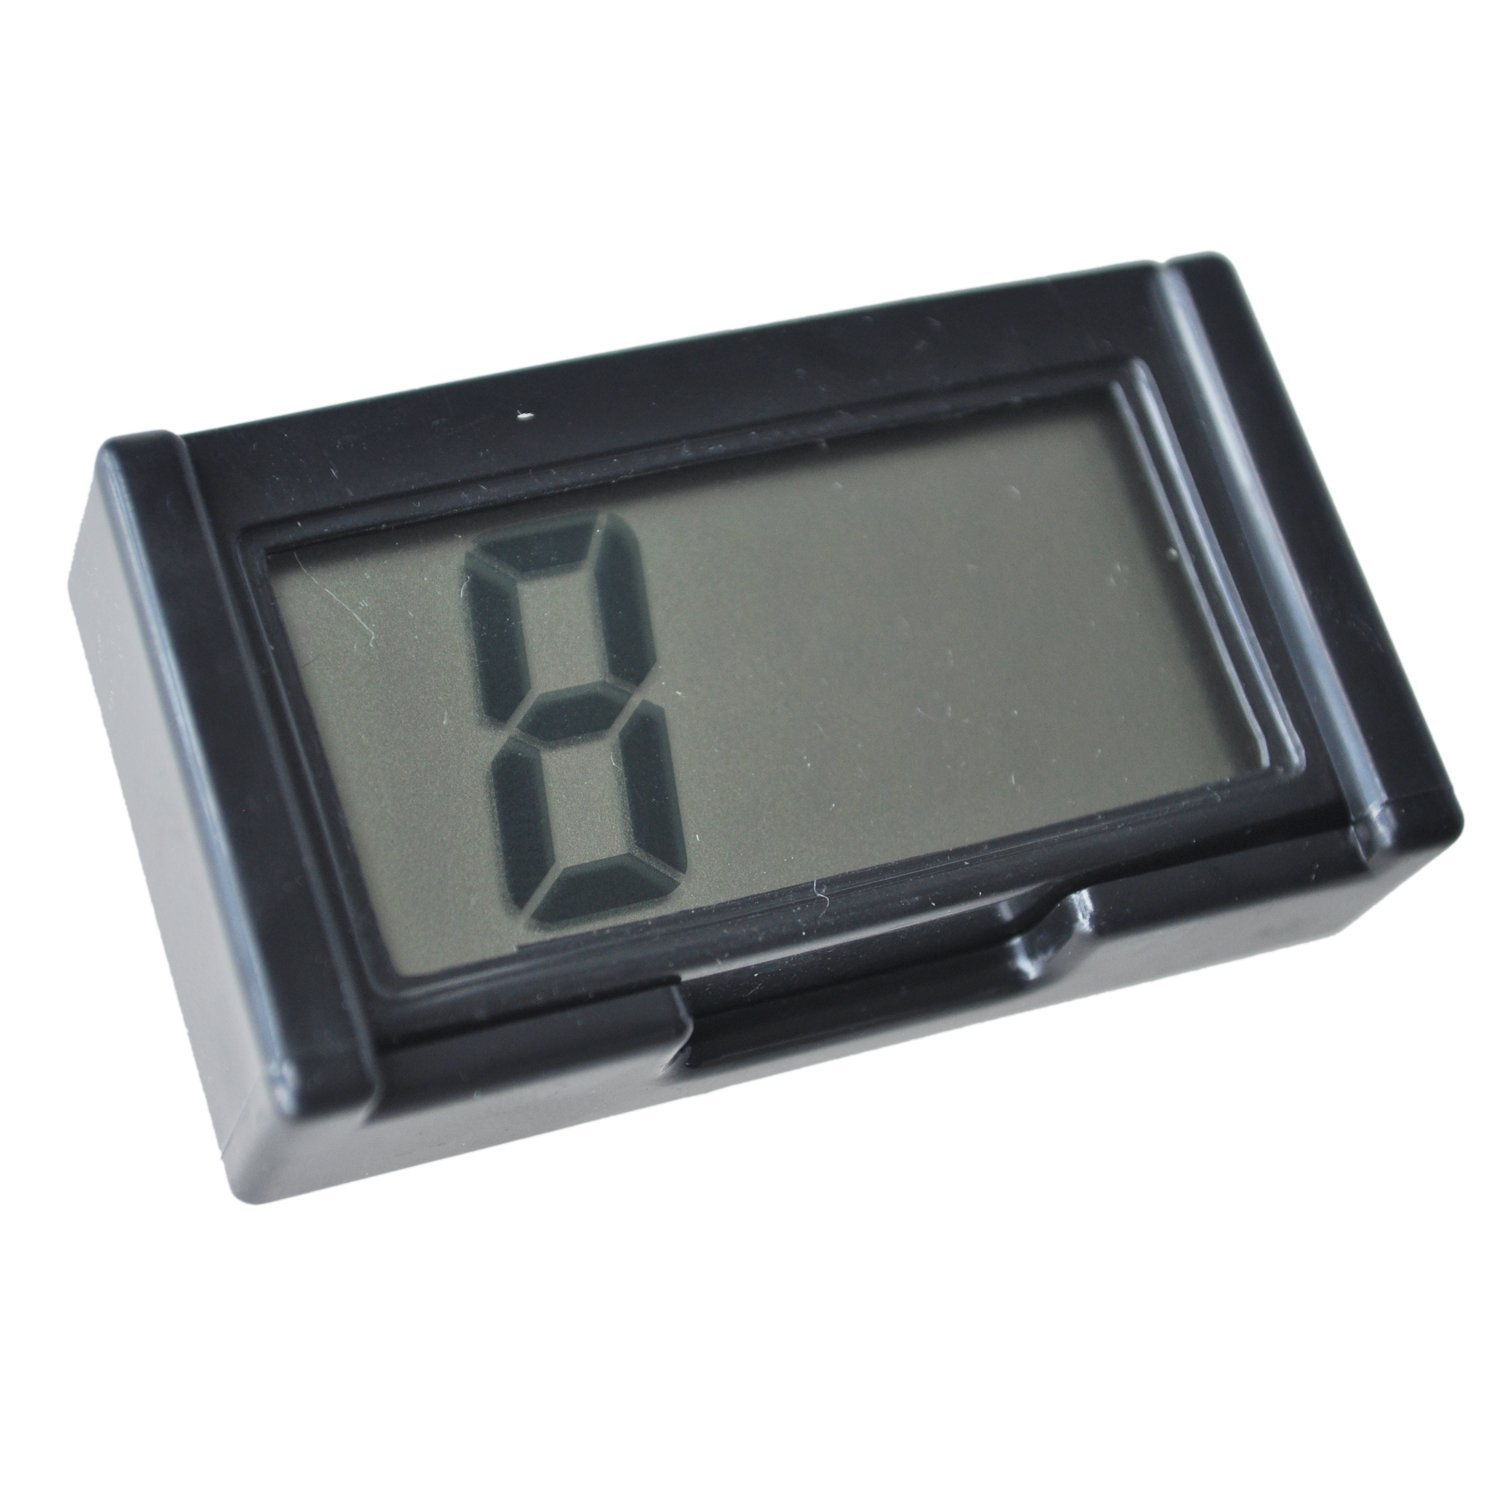 TOOGOO(R) Digital LCD Car Dashboard Desk Date Time Calendar Clock SHOMAGT12528